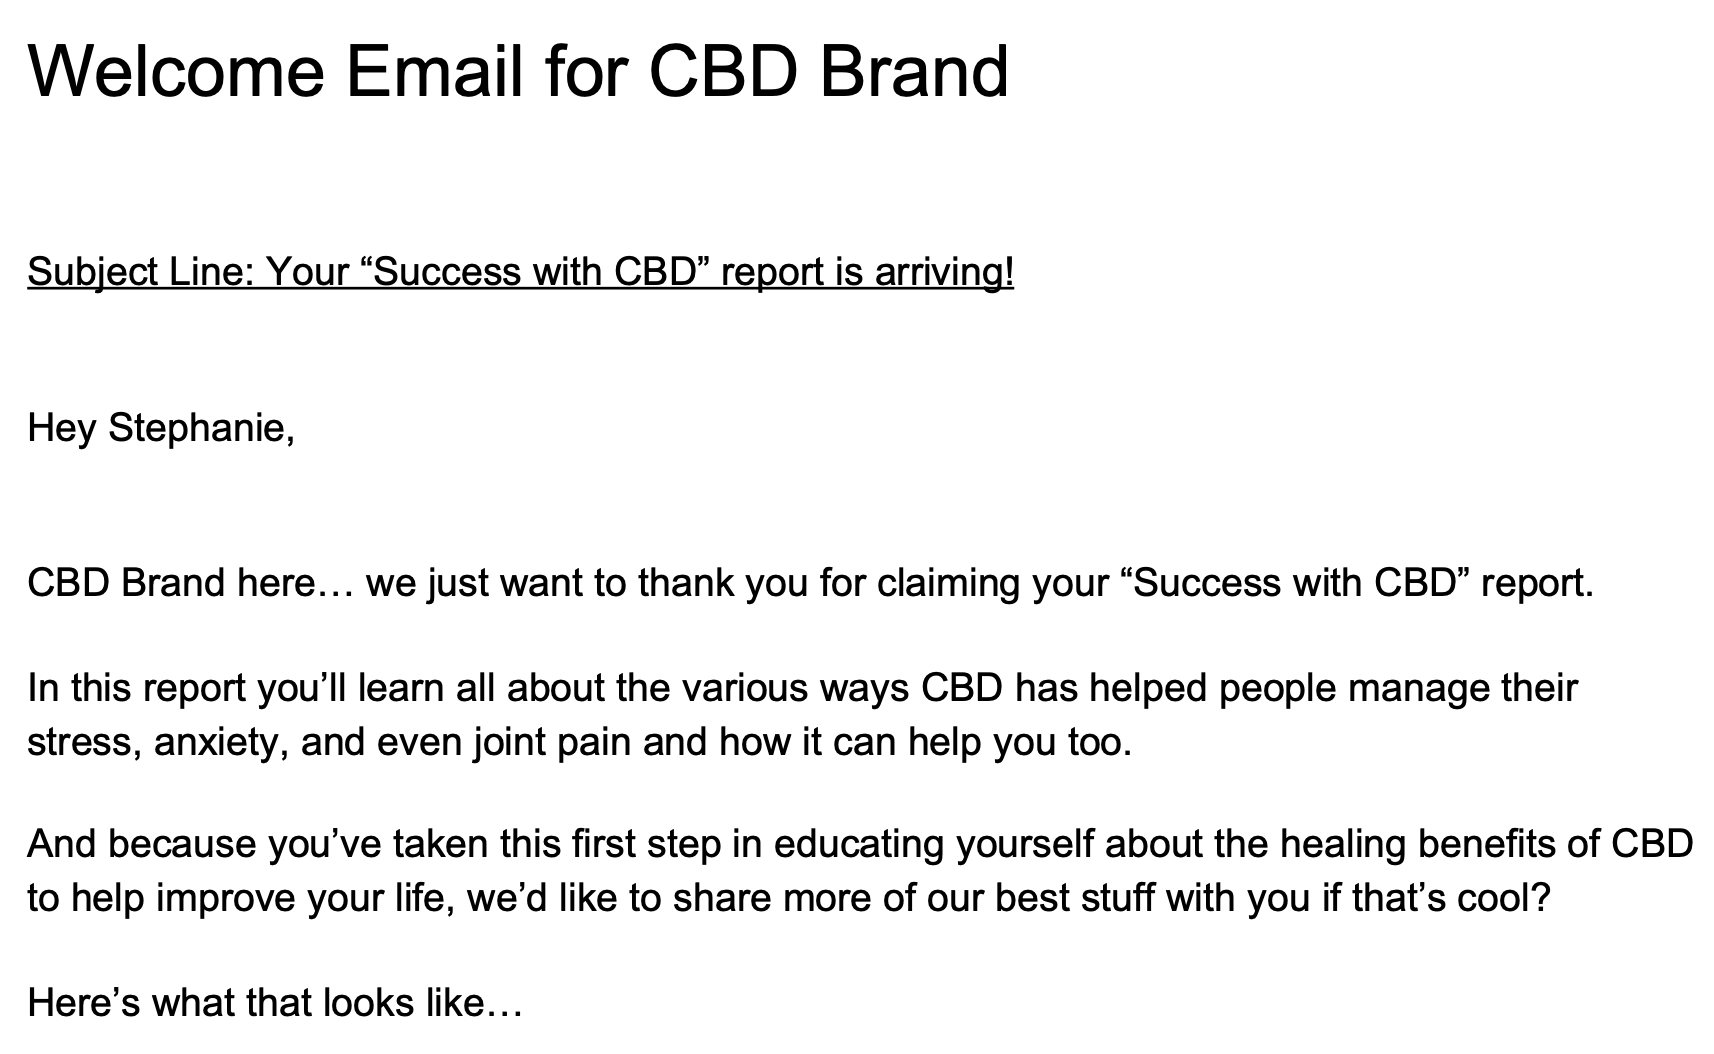 Welcome email for CBD brand